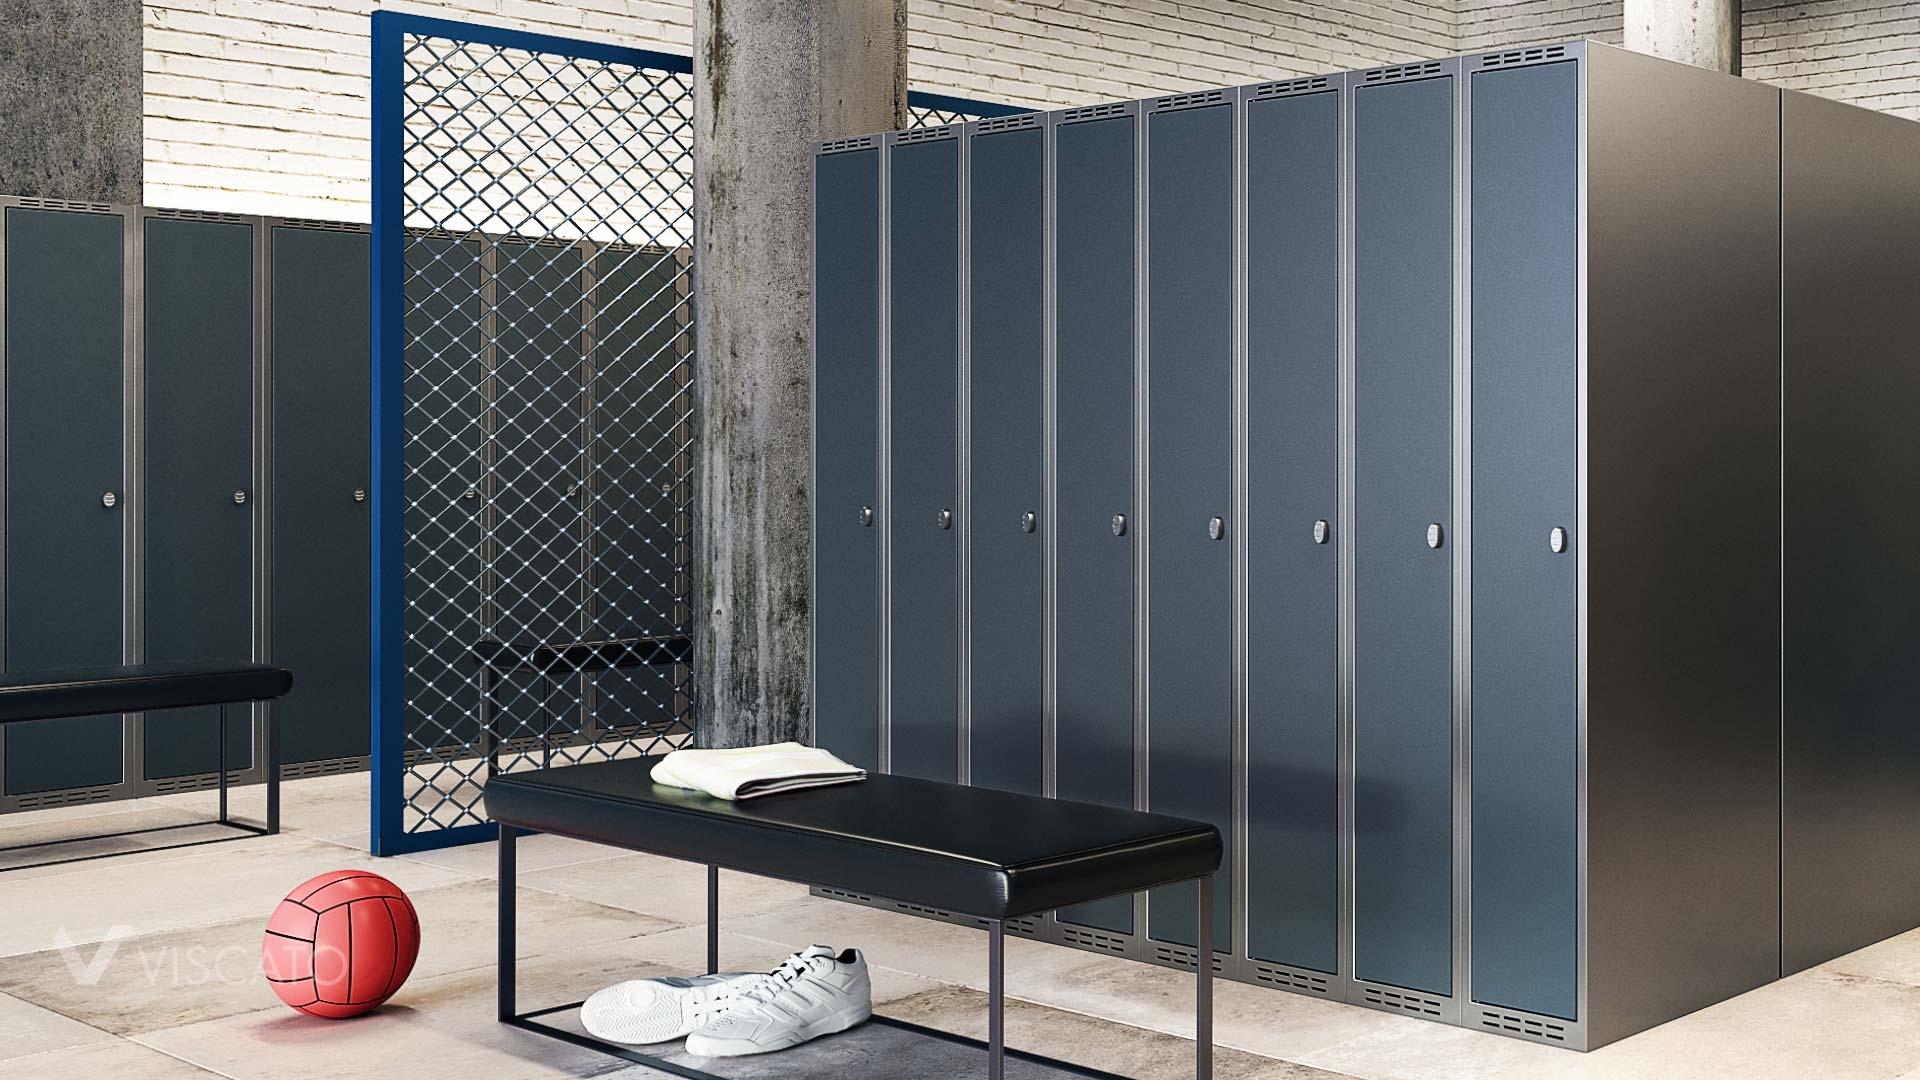 3D interior visualizations of a changing room with lockers- Viscato